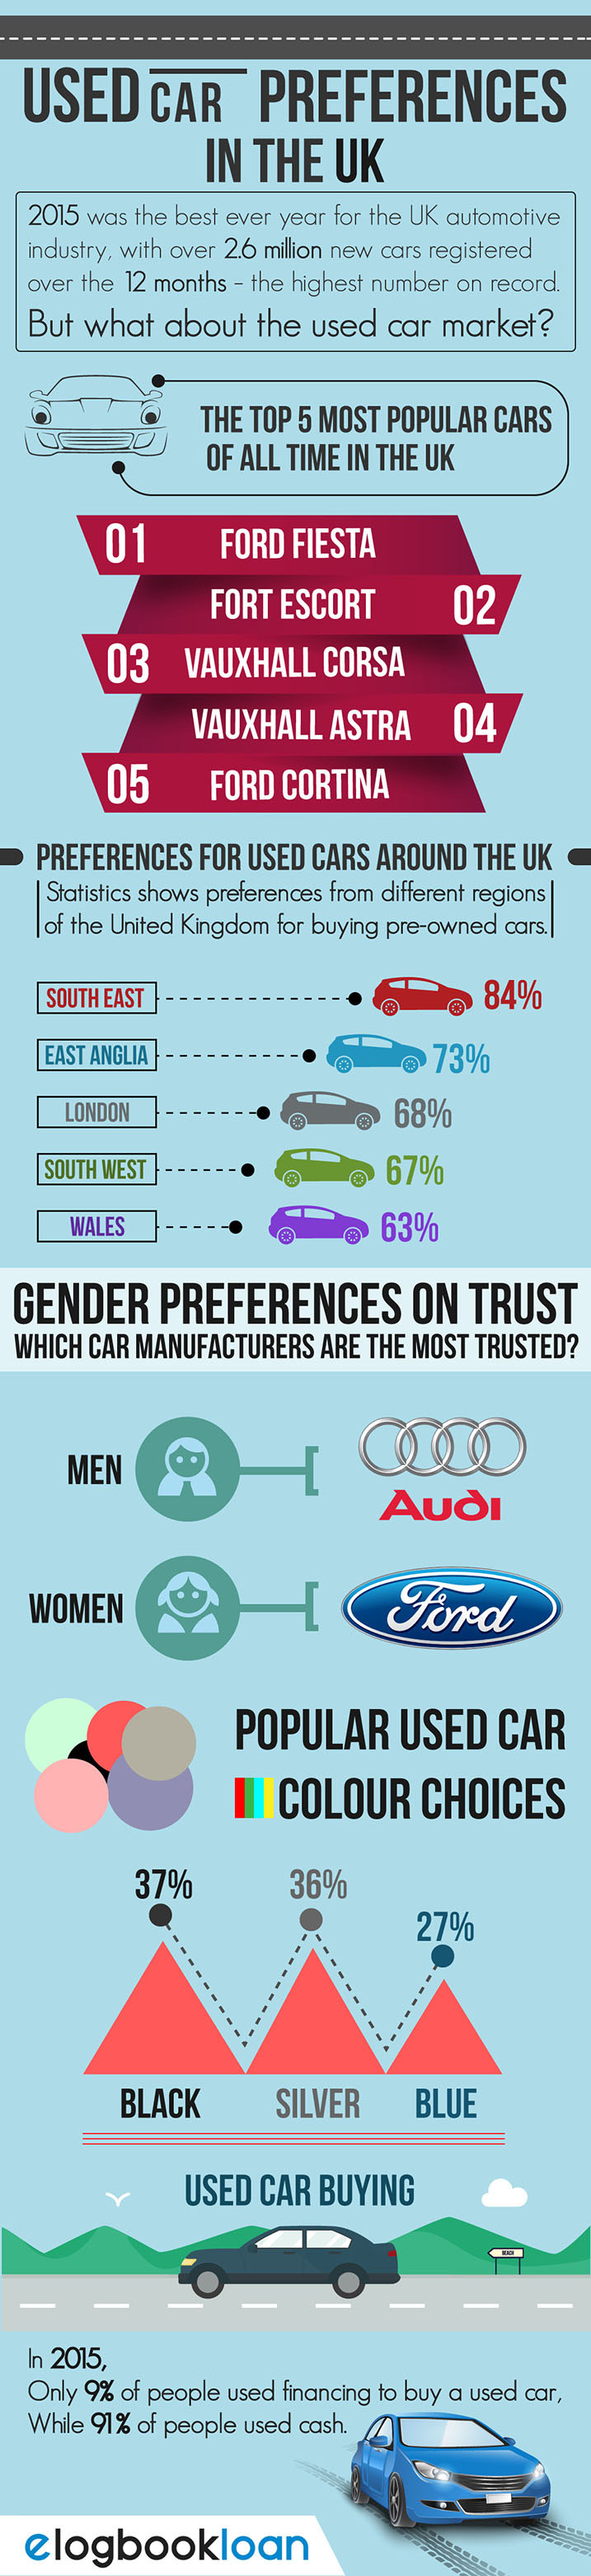 Used Car Preferences in the UK